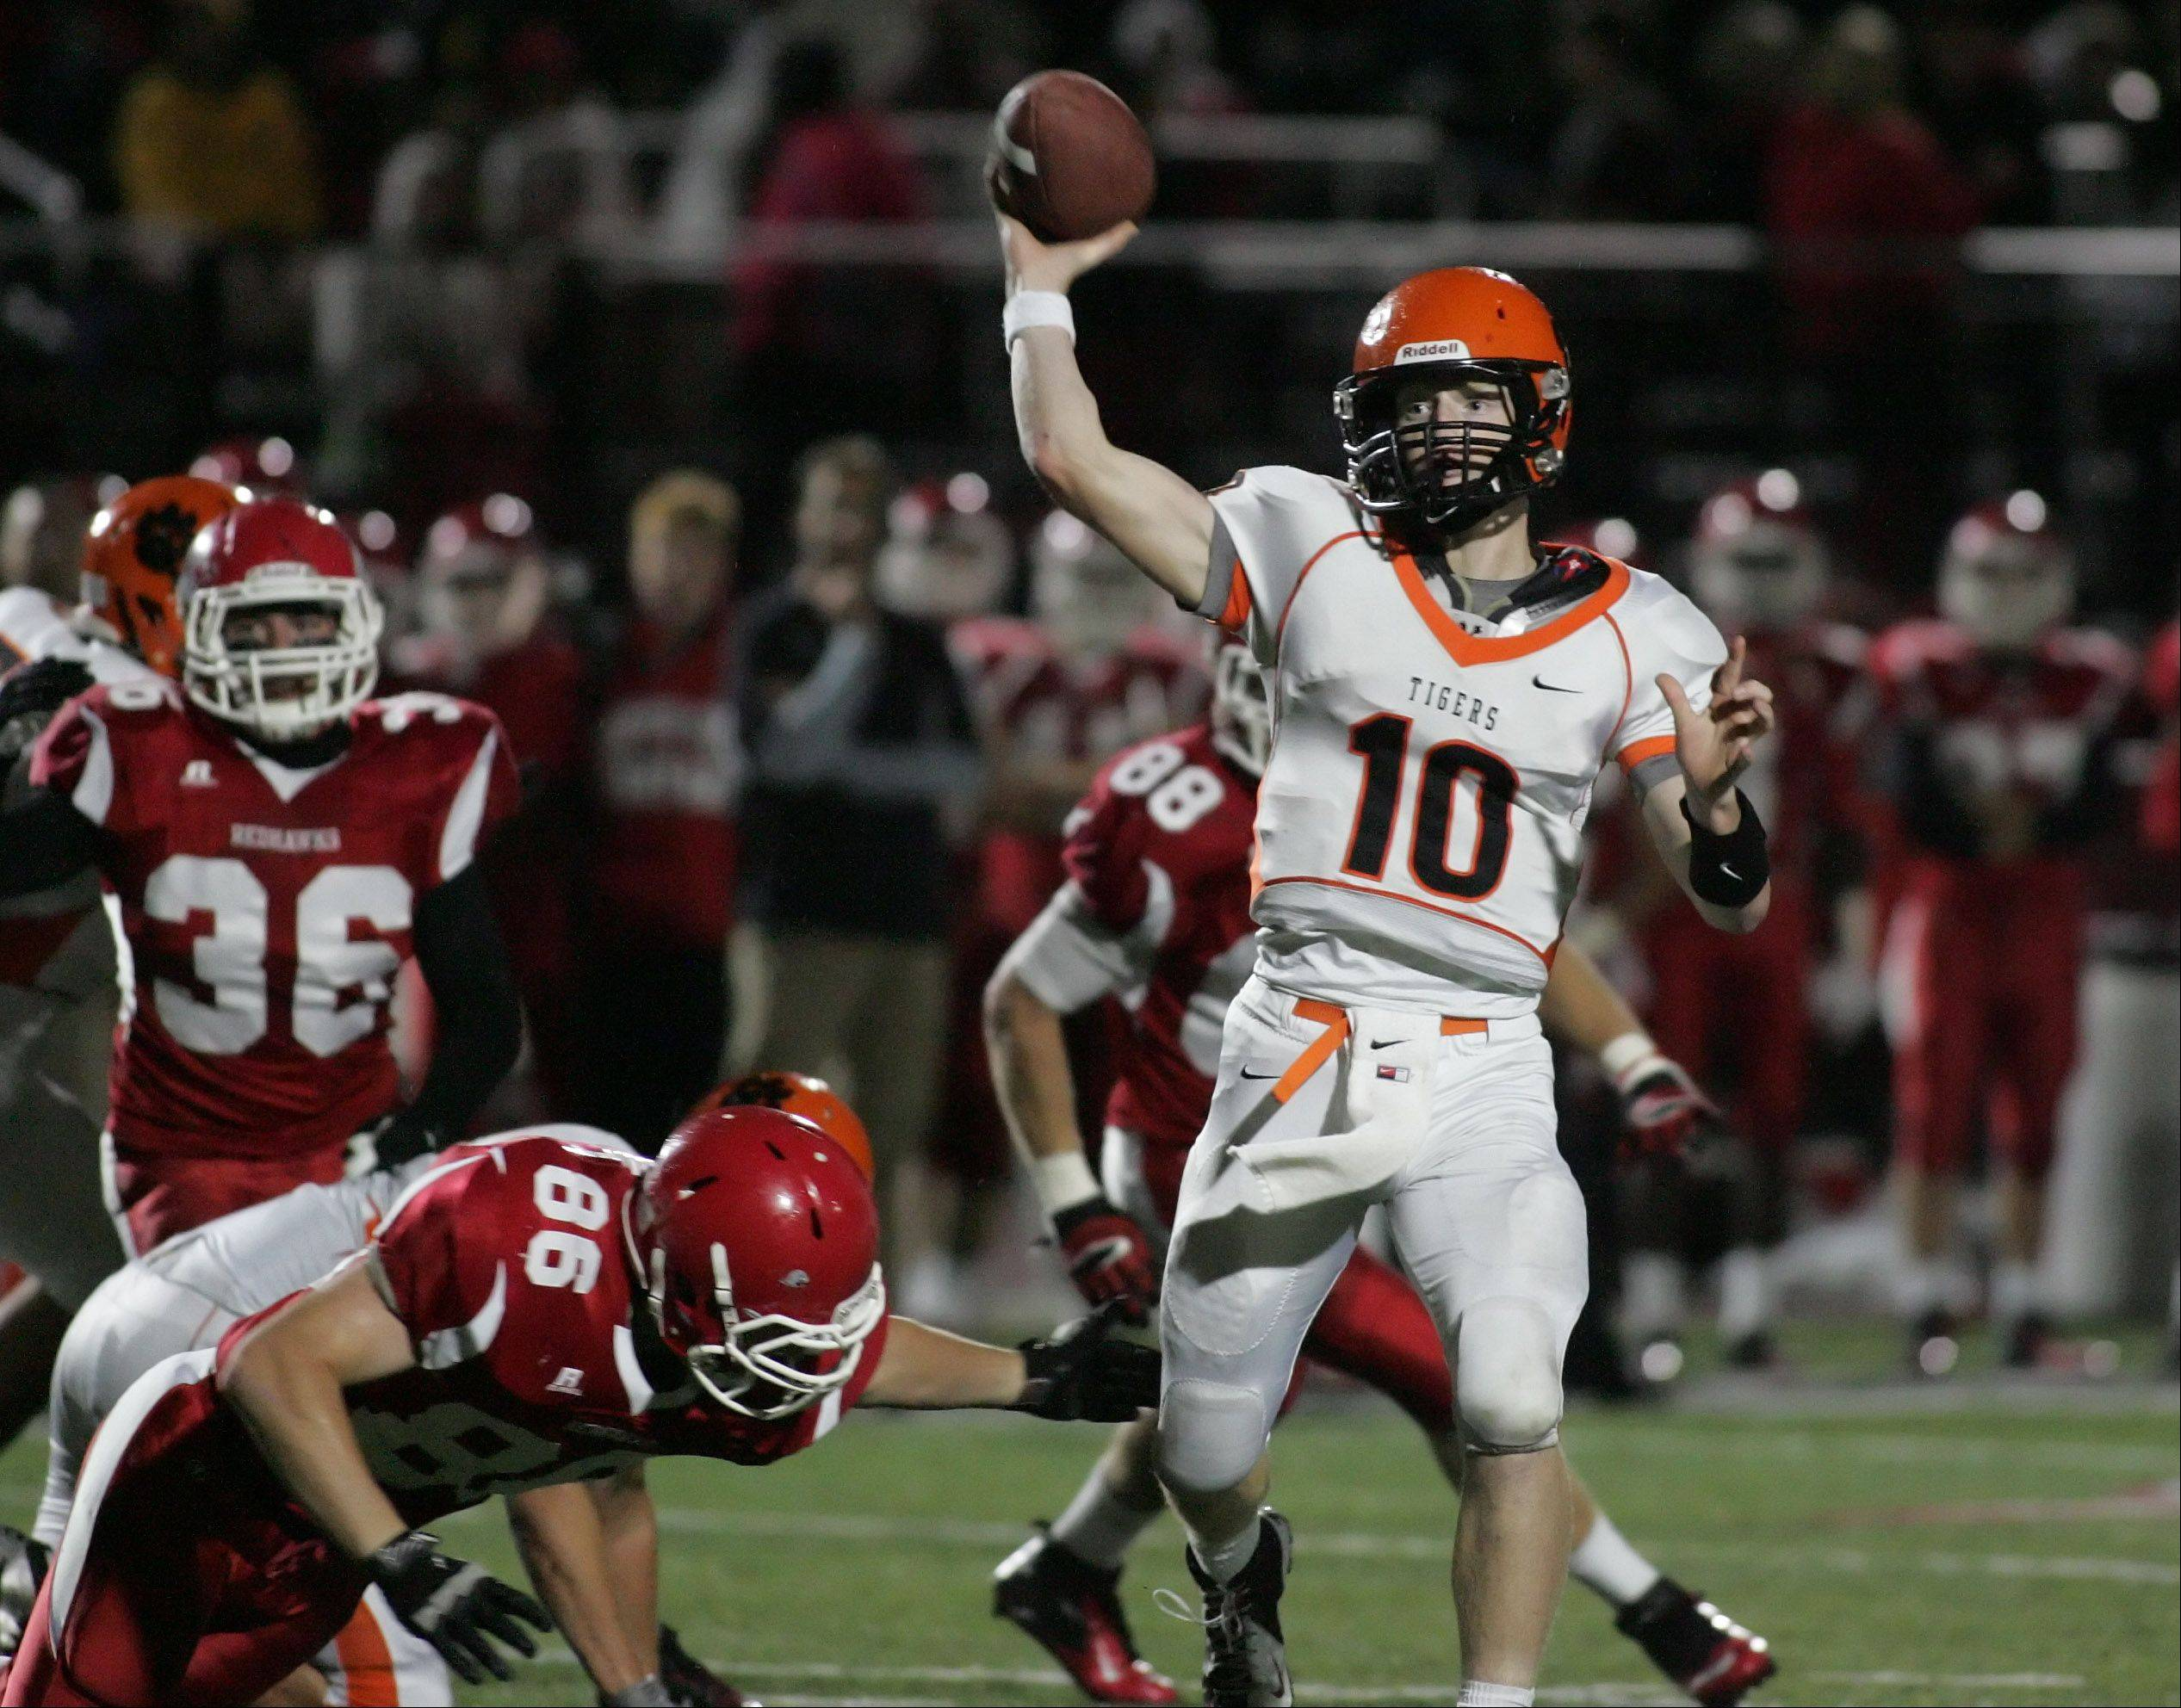 Wheaton Warrenville South quarterback Ryan Graham will lead the Tigers into action against West Chicago on Friday night.